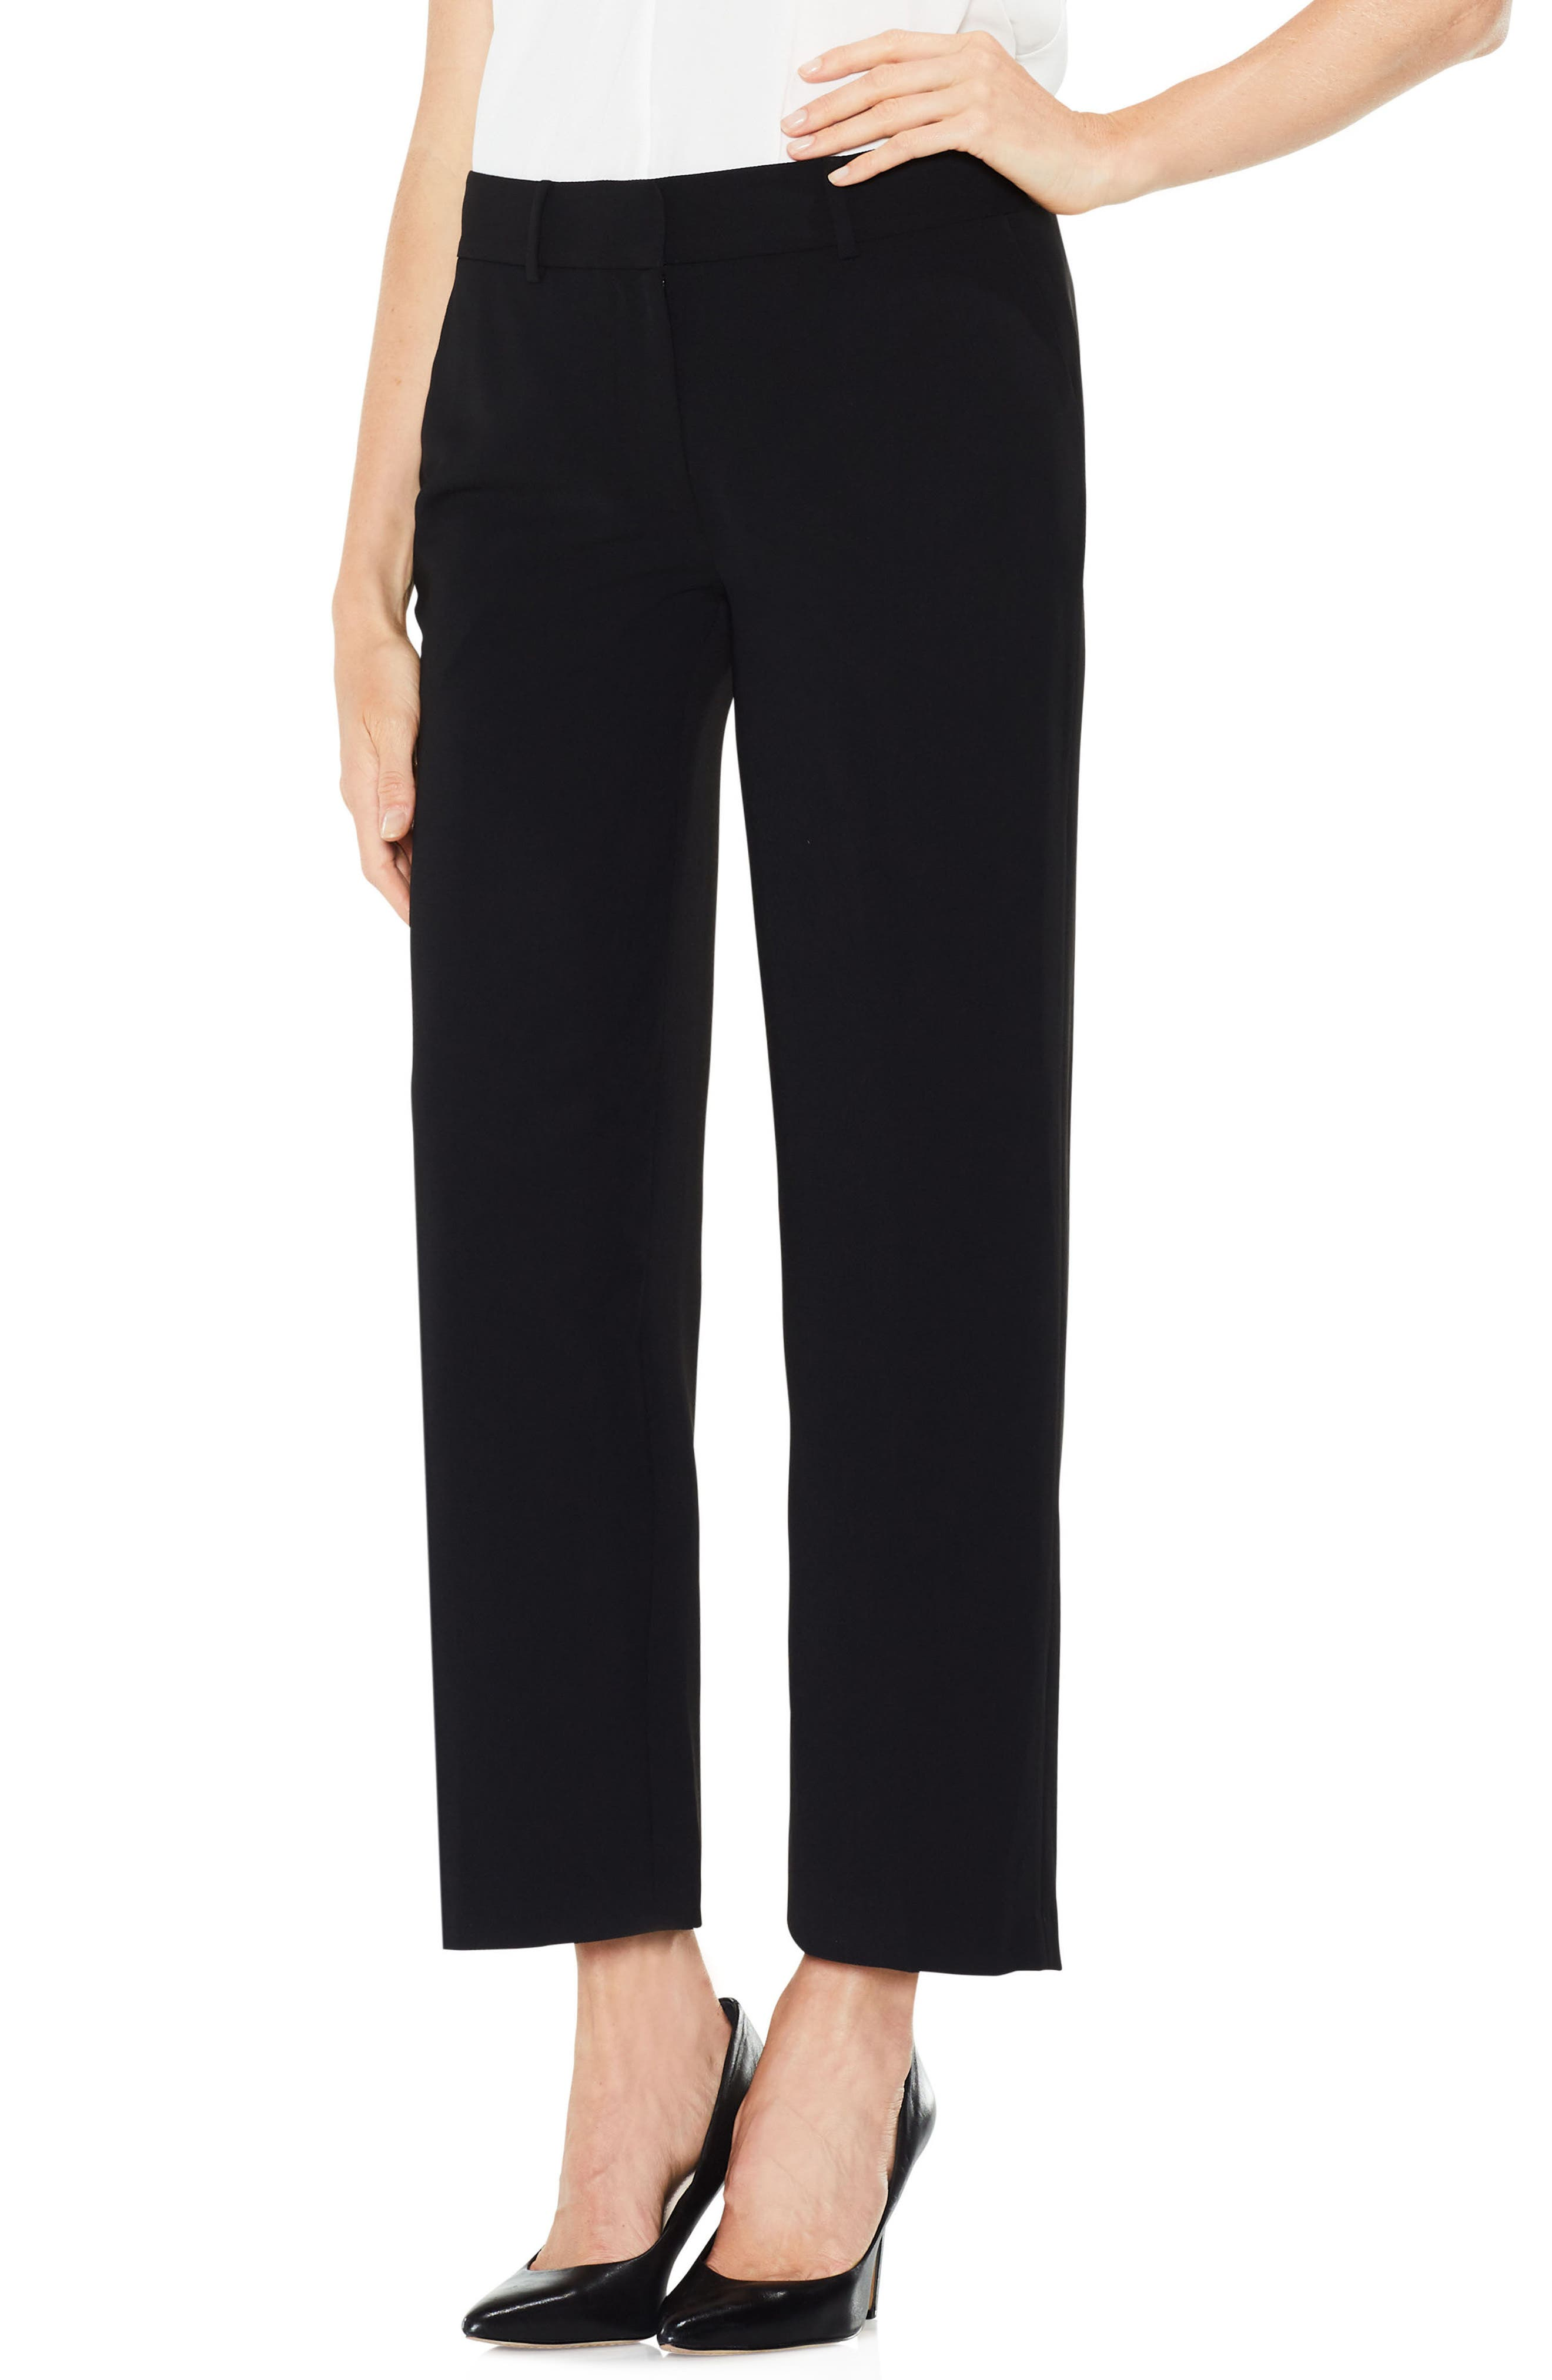 Alternate Image 1 Selected - Vince Camuto Straight Leg Crop Pants